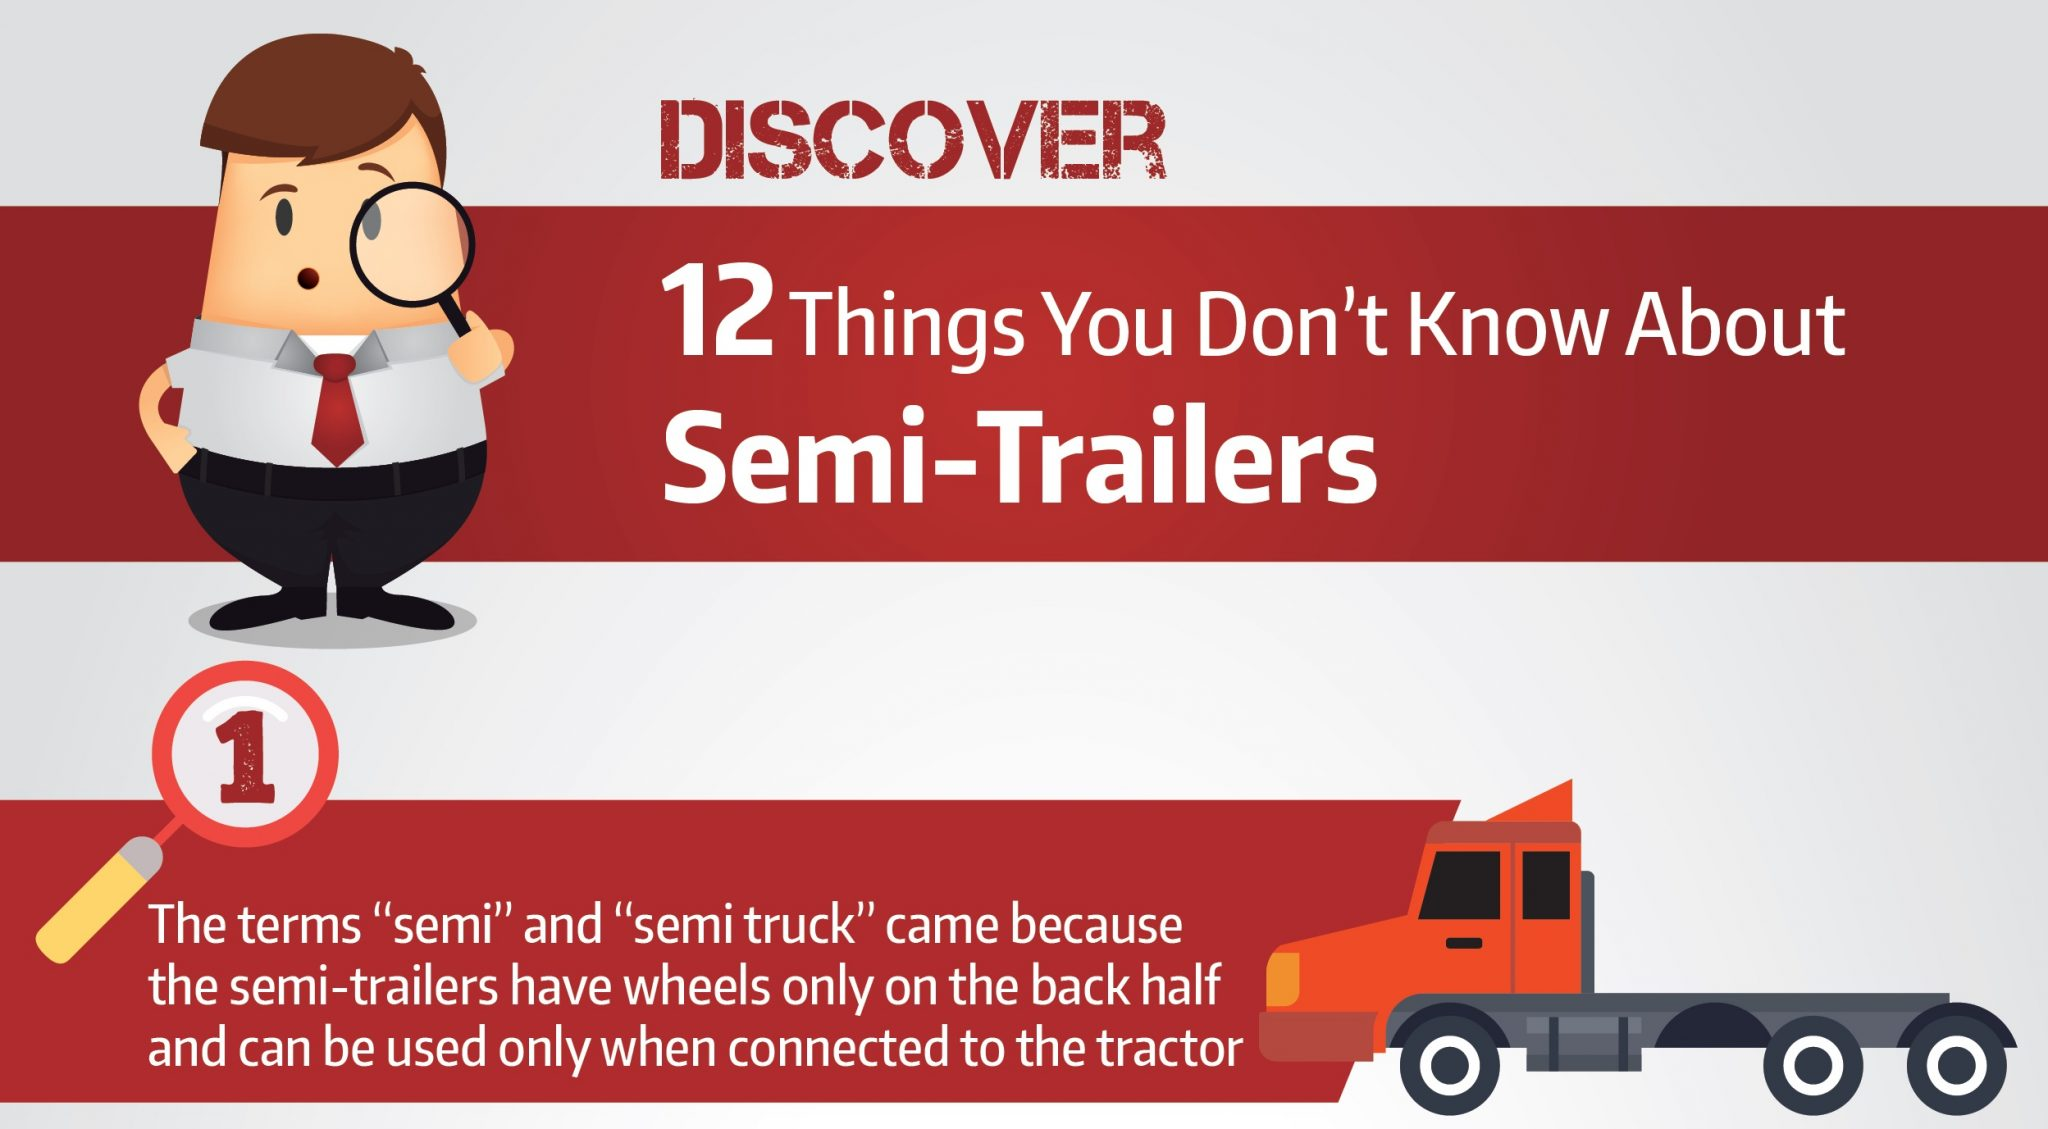 INFOGRAPHIC: Discover 12 Things You Don't Know About Semi Trailers